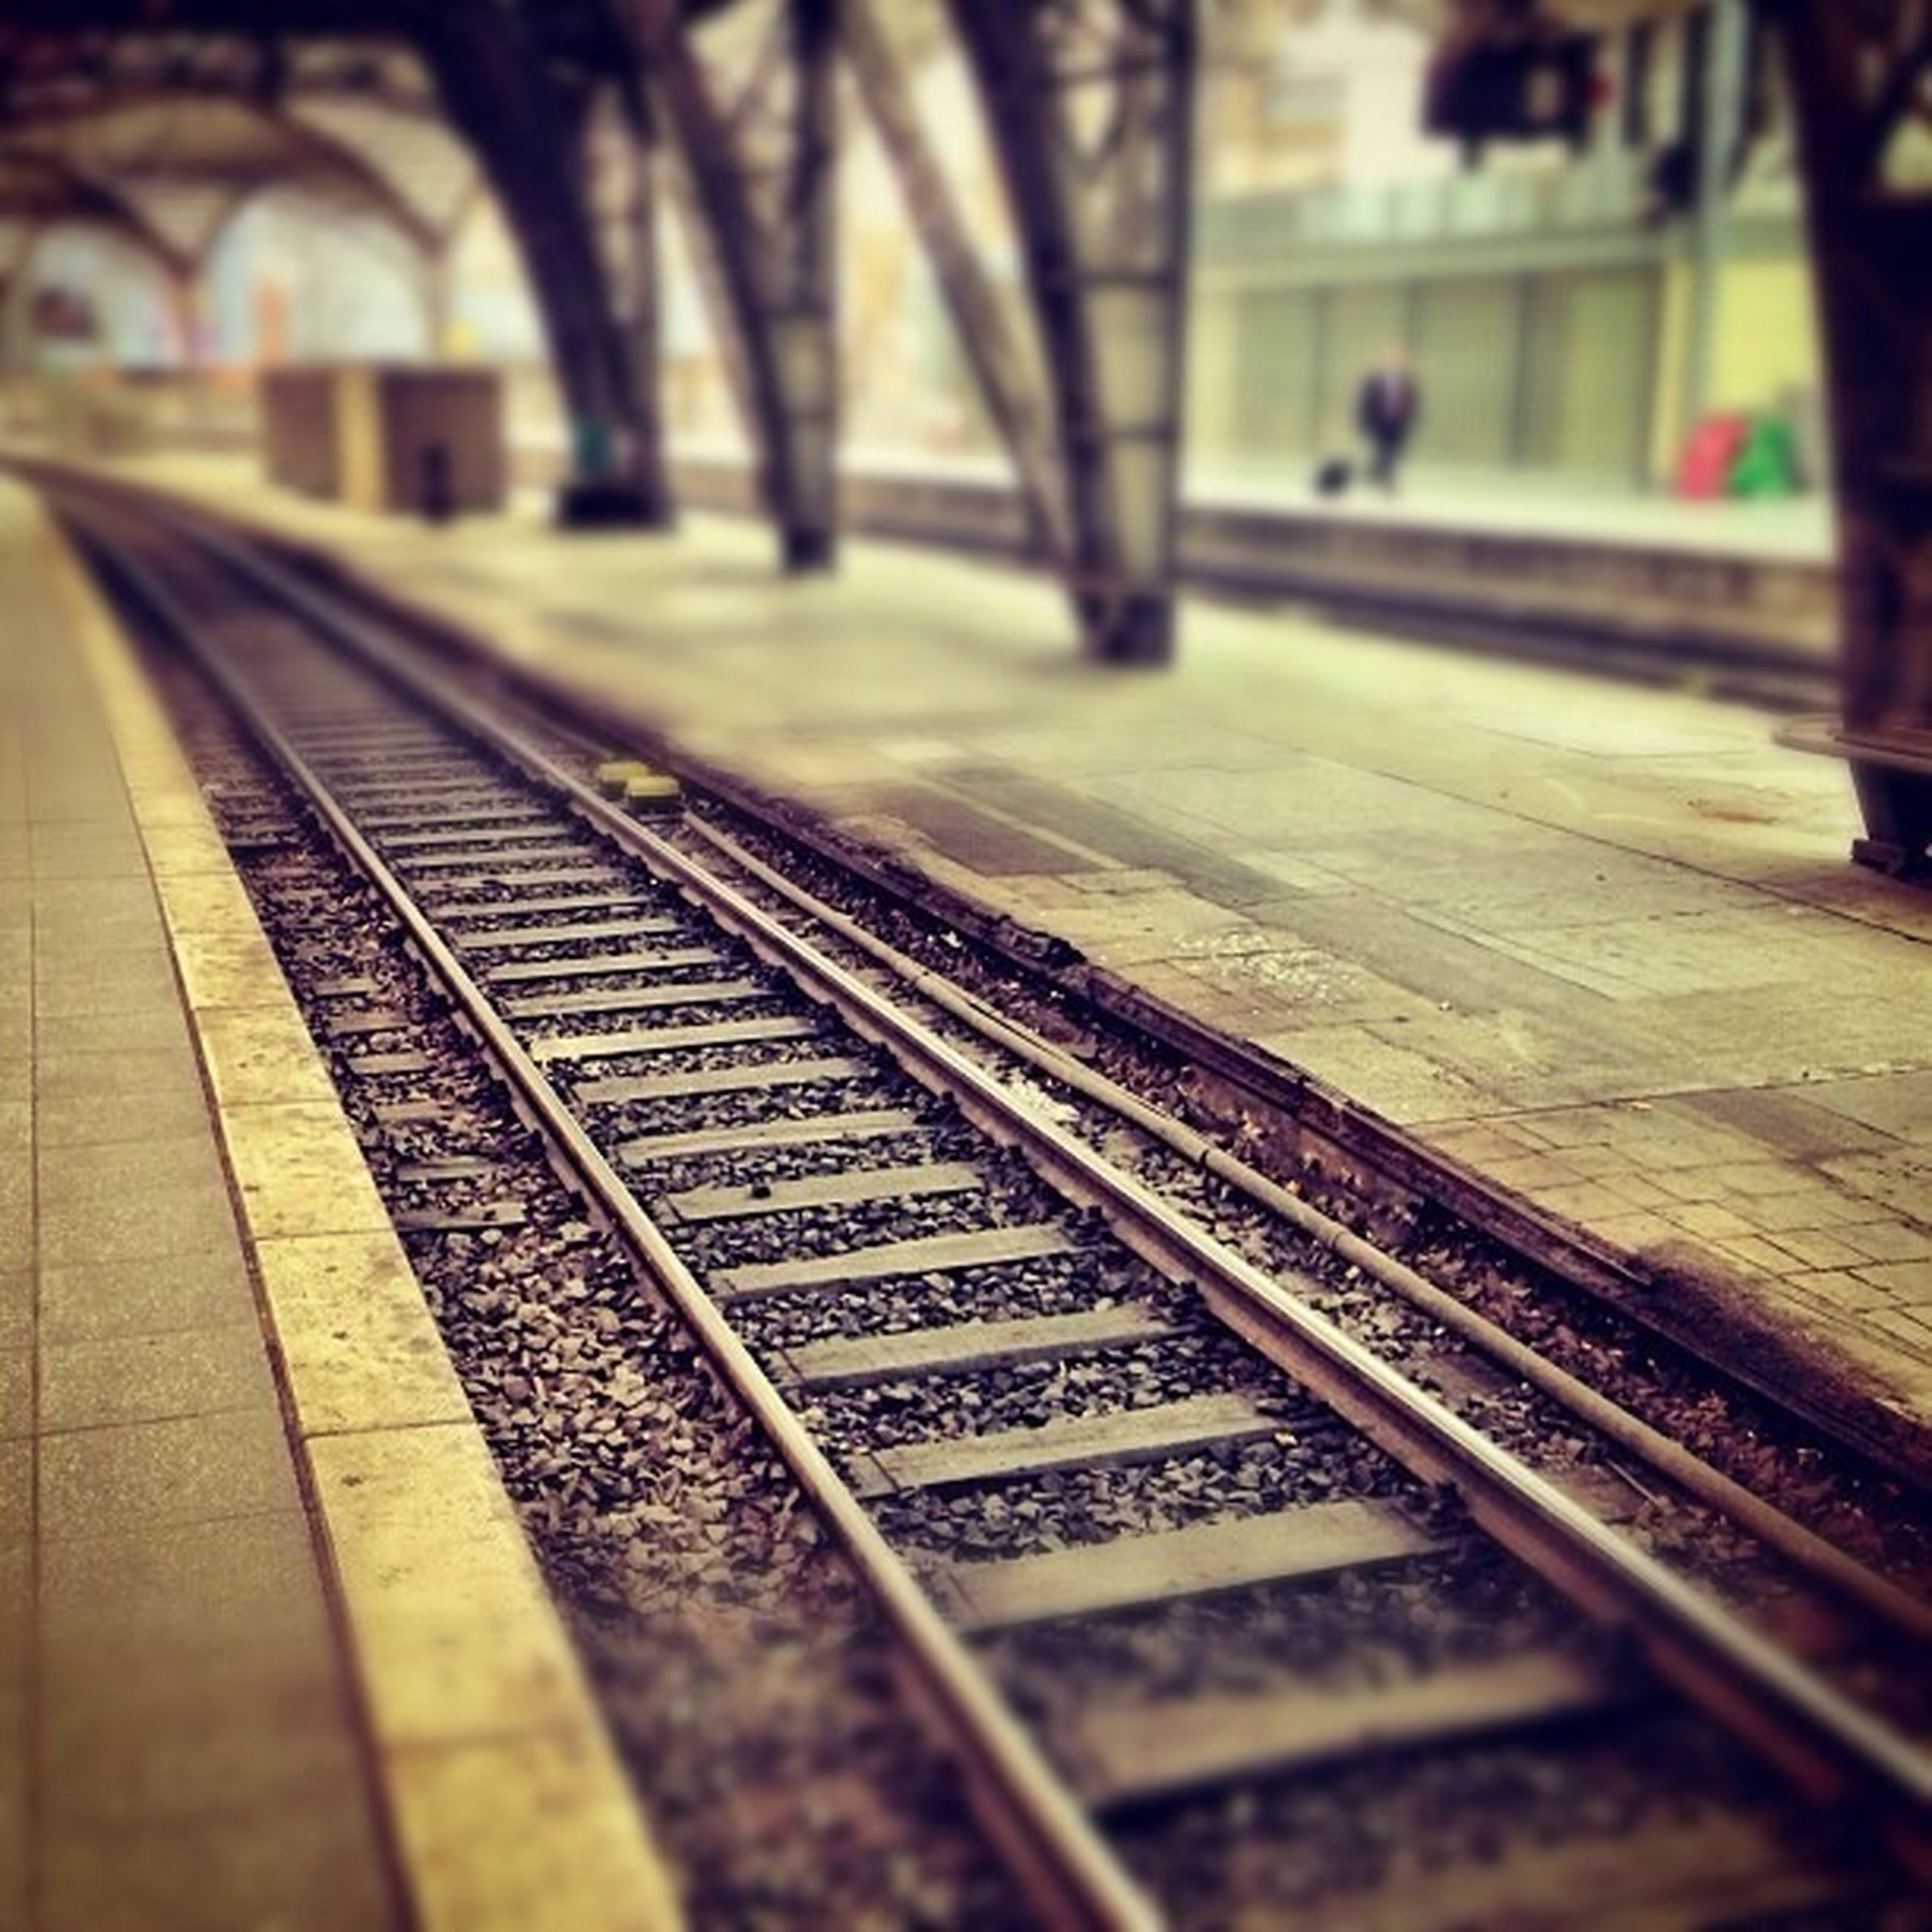 railroad track, transportation, rail transportation, public transportation, selective focus, railroad station platform, railroad station, focus on foreground, diminishing perspective, railway track, travel, surface level, metal, day, train, the way forward, train - vehicle, no people, public transport, close-up